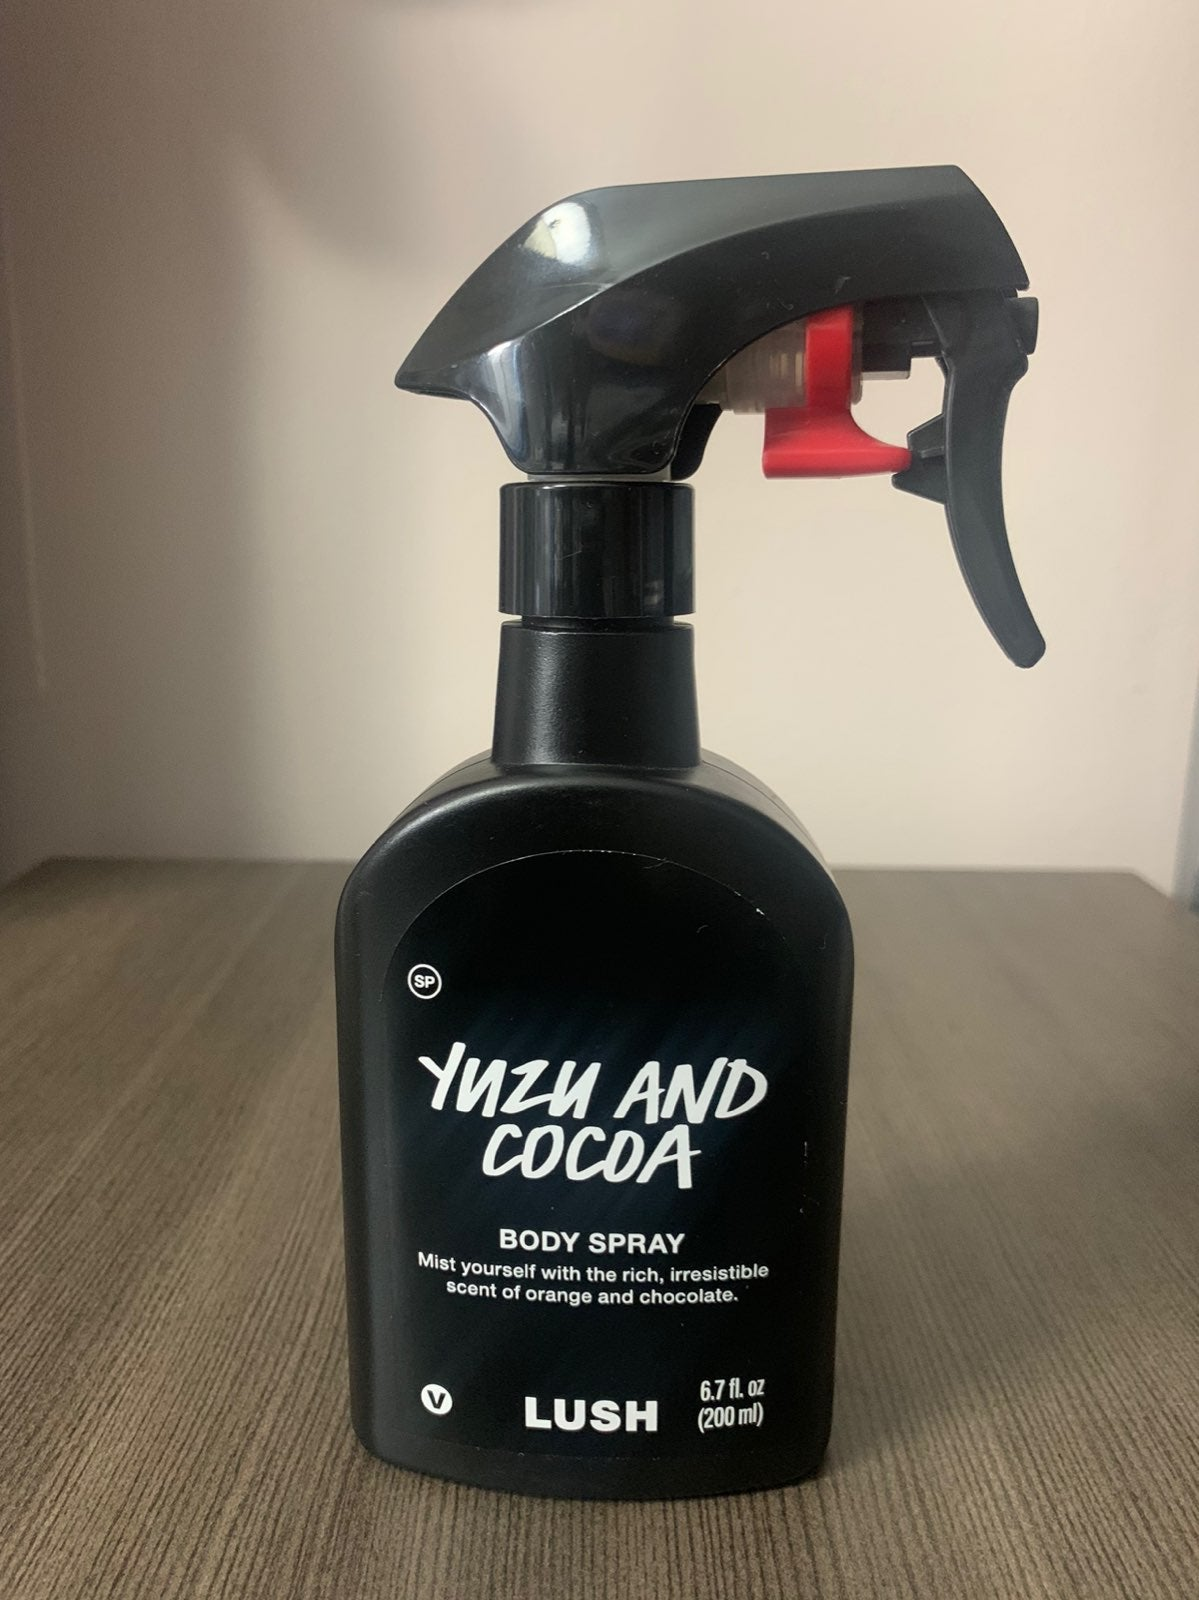 Lush Yuzu and Cocoa Body Spray